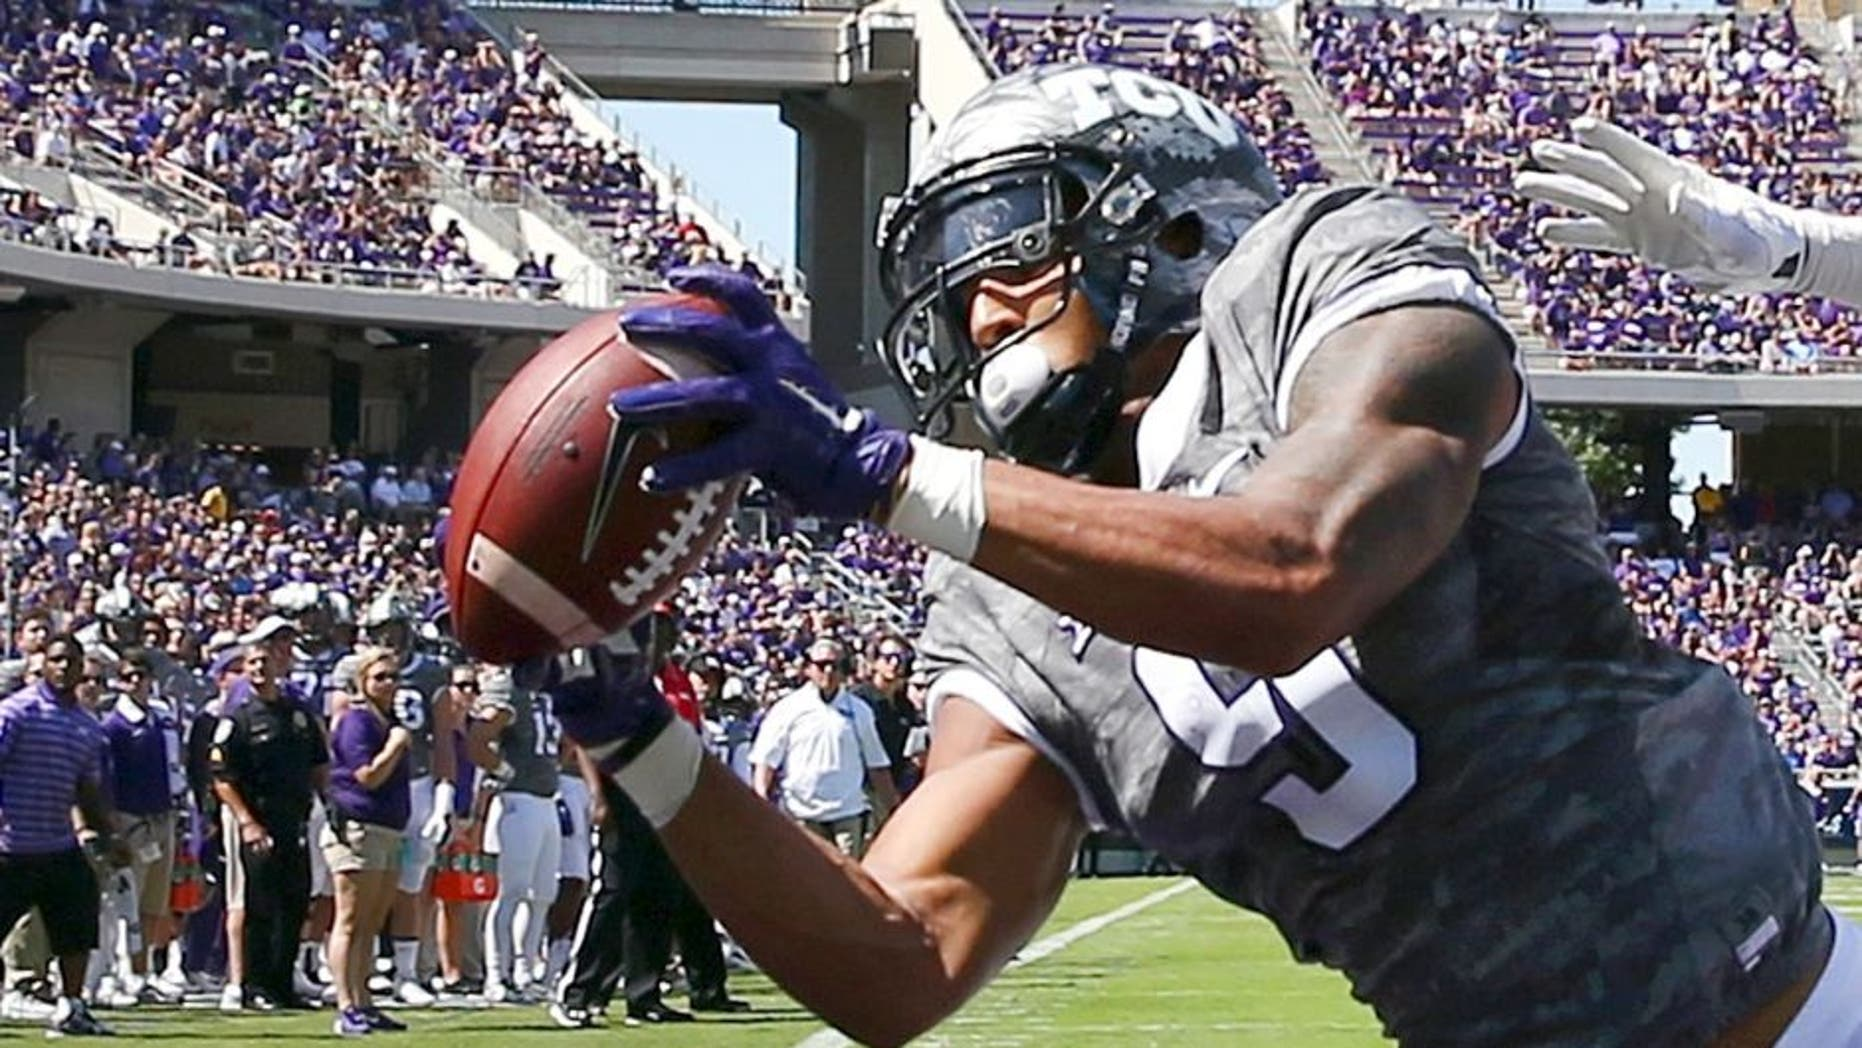 FORT WORTH, TX - SEPTEMBER 12: Josh Doctson #9 of the TCU Horned Frogs fails to hang onto a touch down pass under coverage from Demundre Freeman #26 of the Stephen F. Austin Lumberjacks in the first half at Amon G. Carter Stadium on September 12, 2015 in Fort Worth, Texas. (Photo by Tom Pennington/Getty Images)